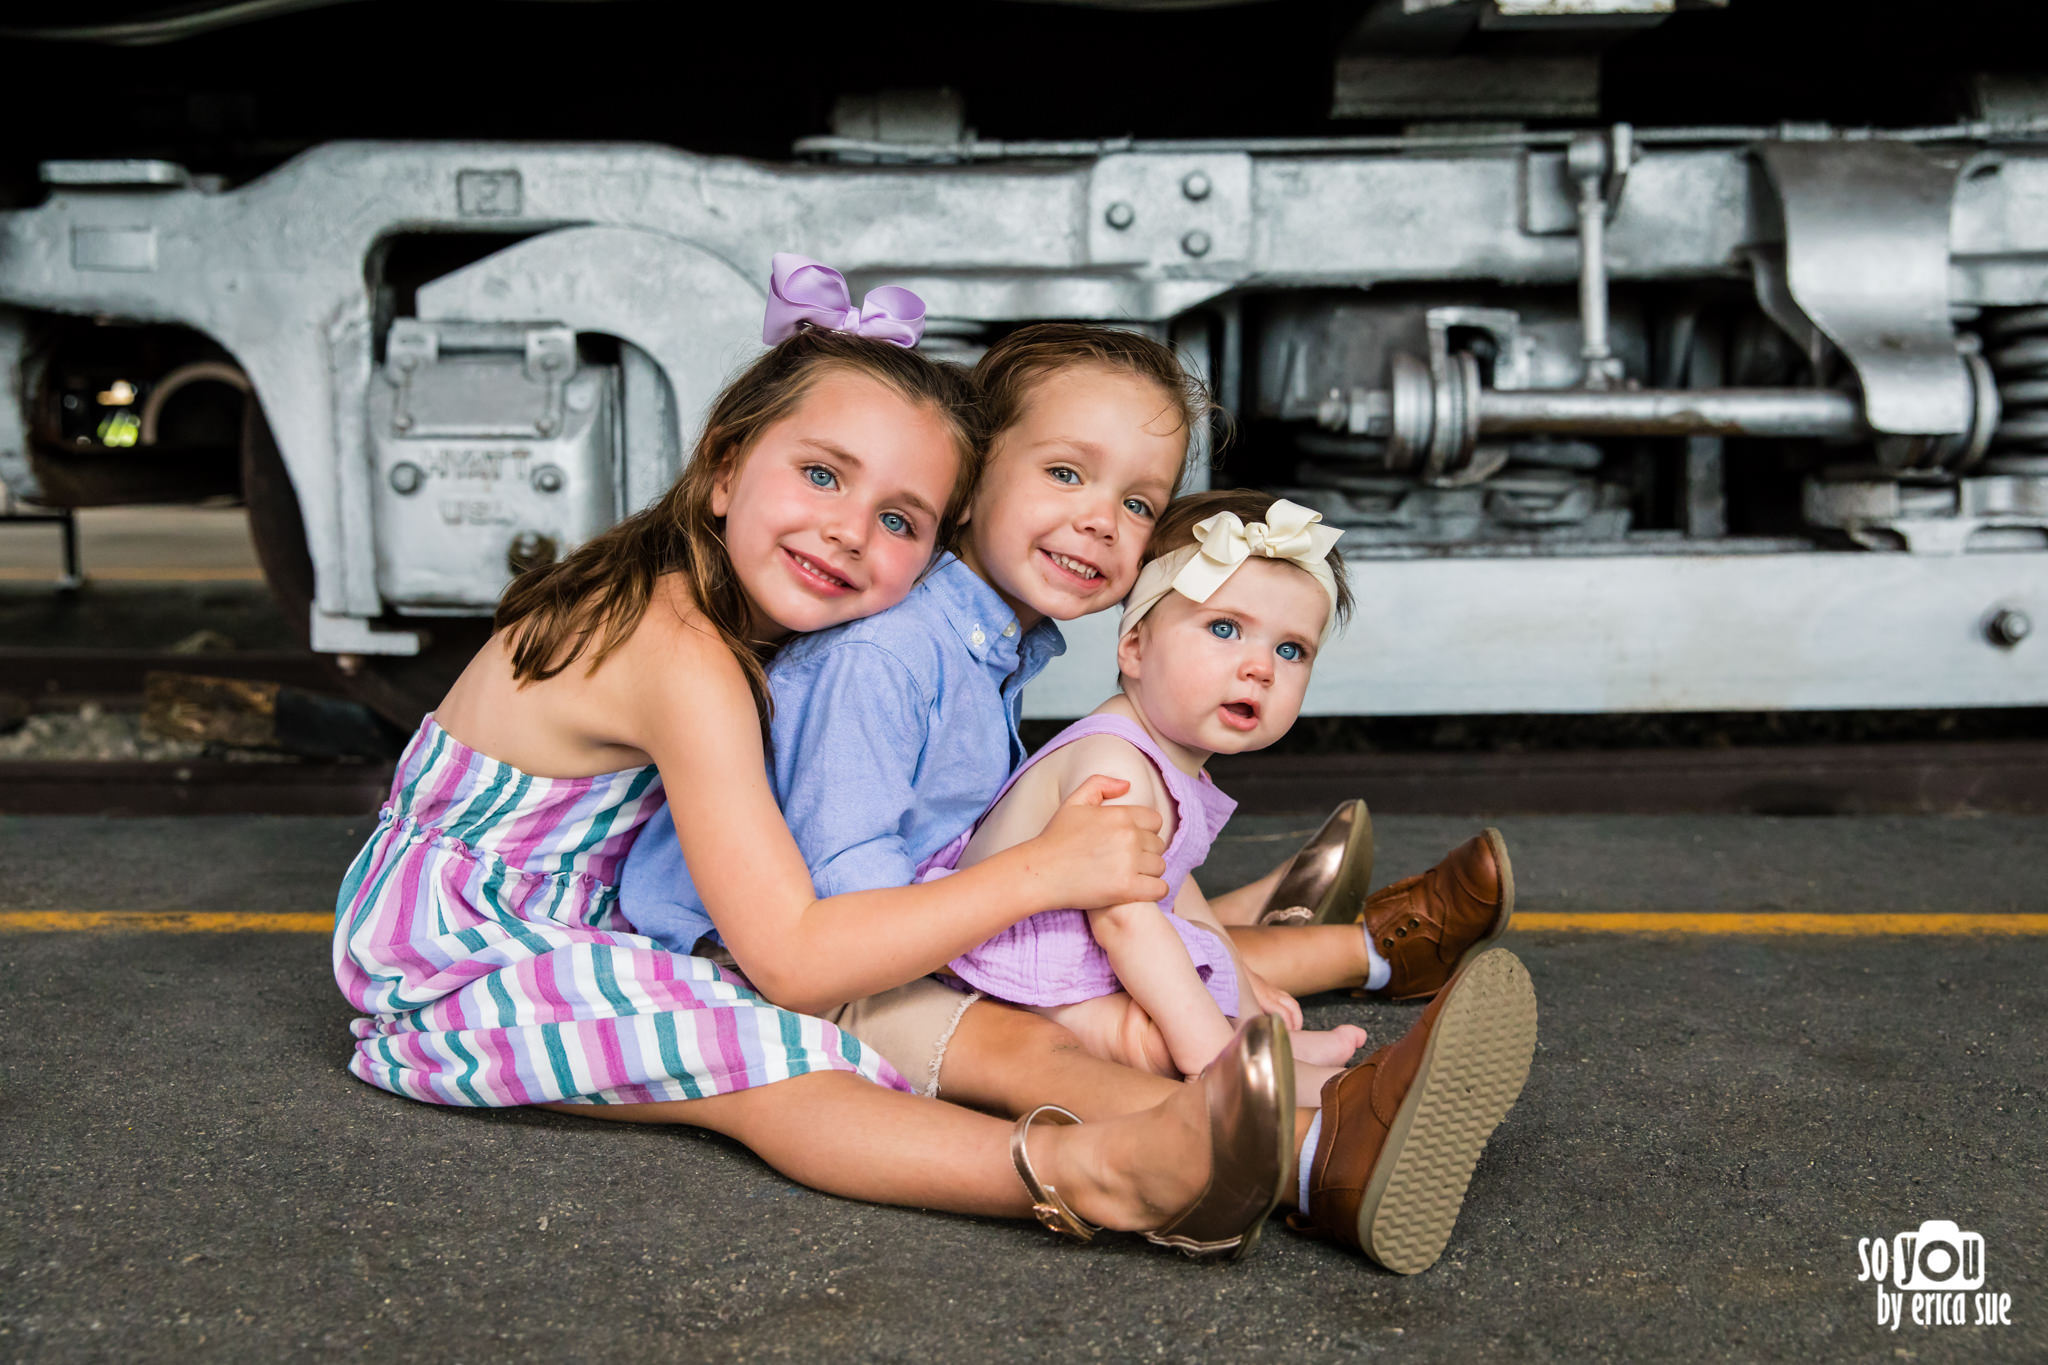 so-you-by-erica-sue-gold-coast-railroad-museum-miami-family-photo-shoot-session-6831.JPG